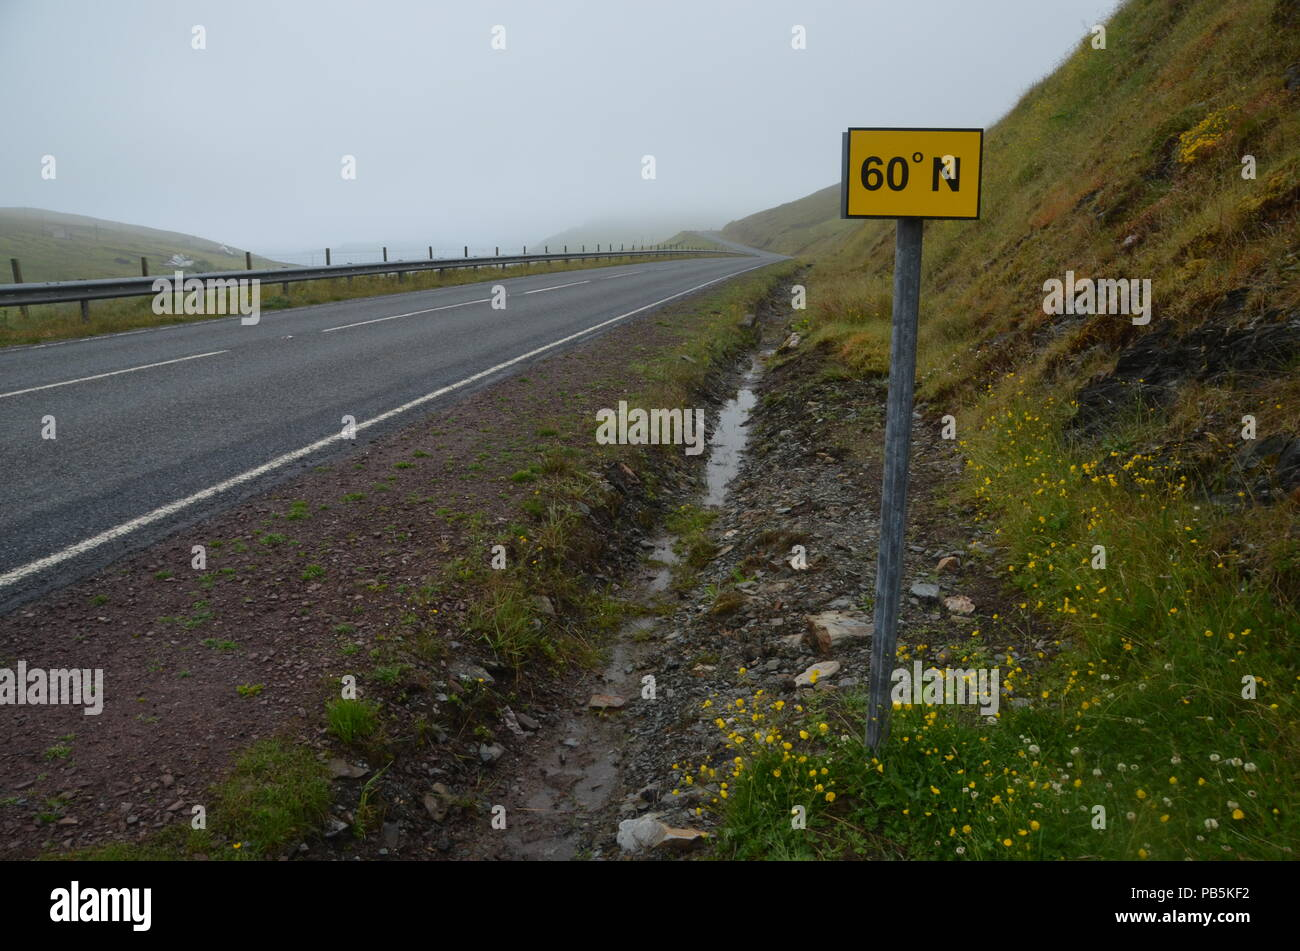 A sign marking the point where the A970 road crosses the 60 degrees north line of latitude, in Shetland, British Isles, UK - Stock Image